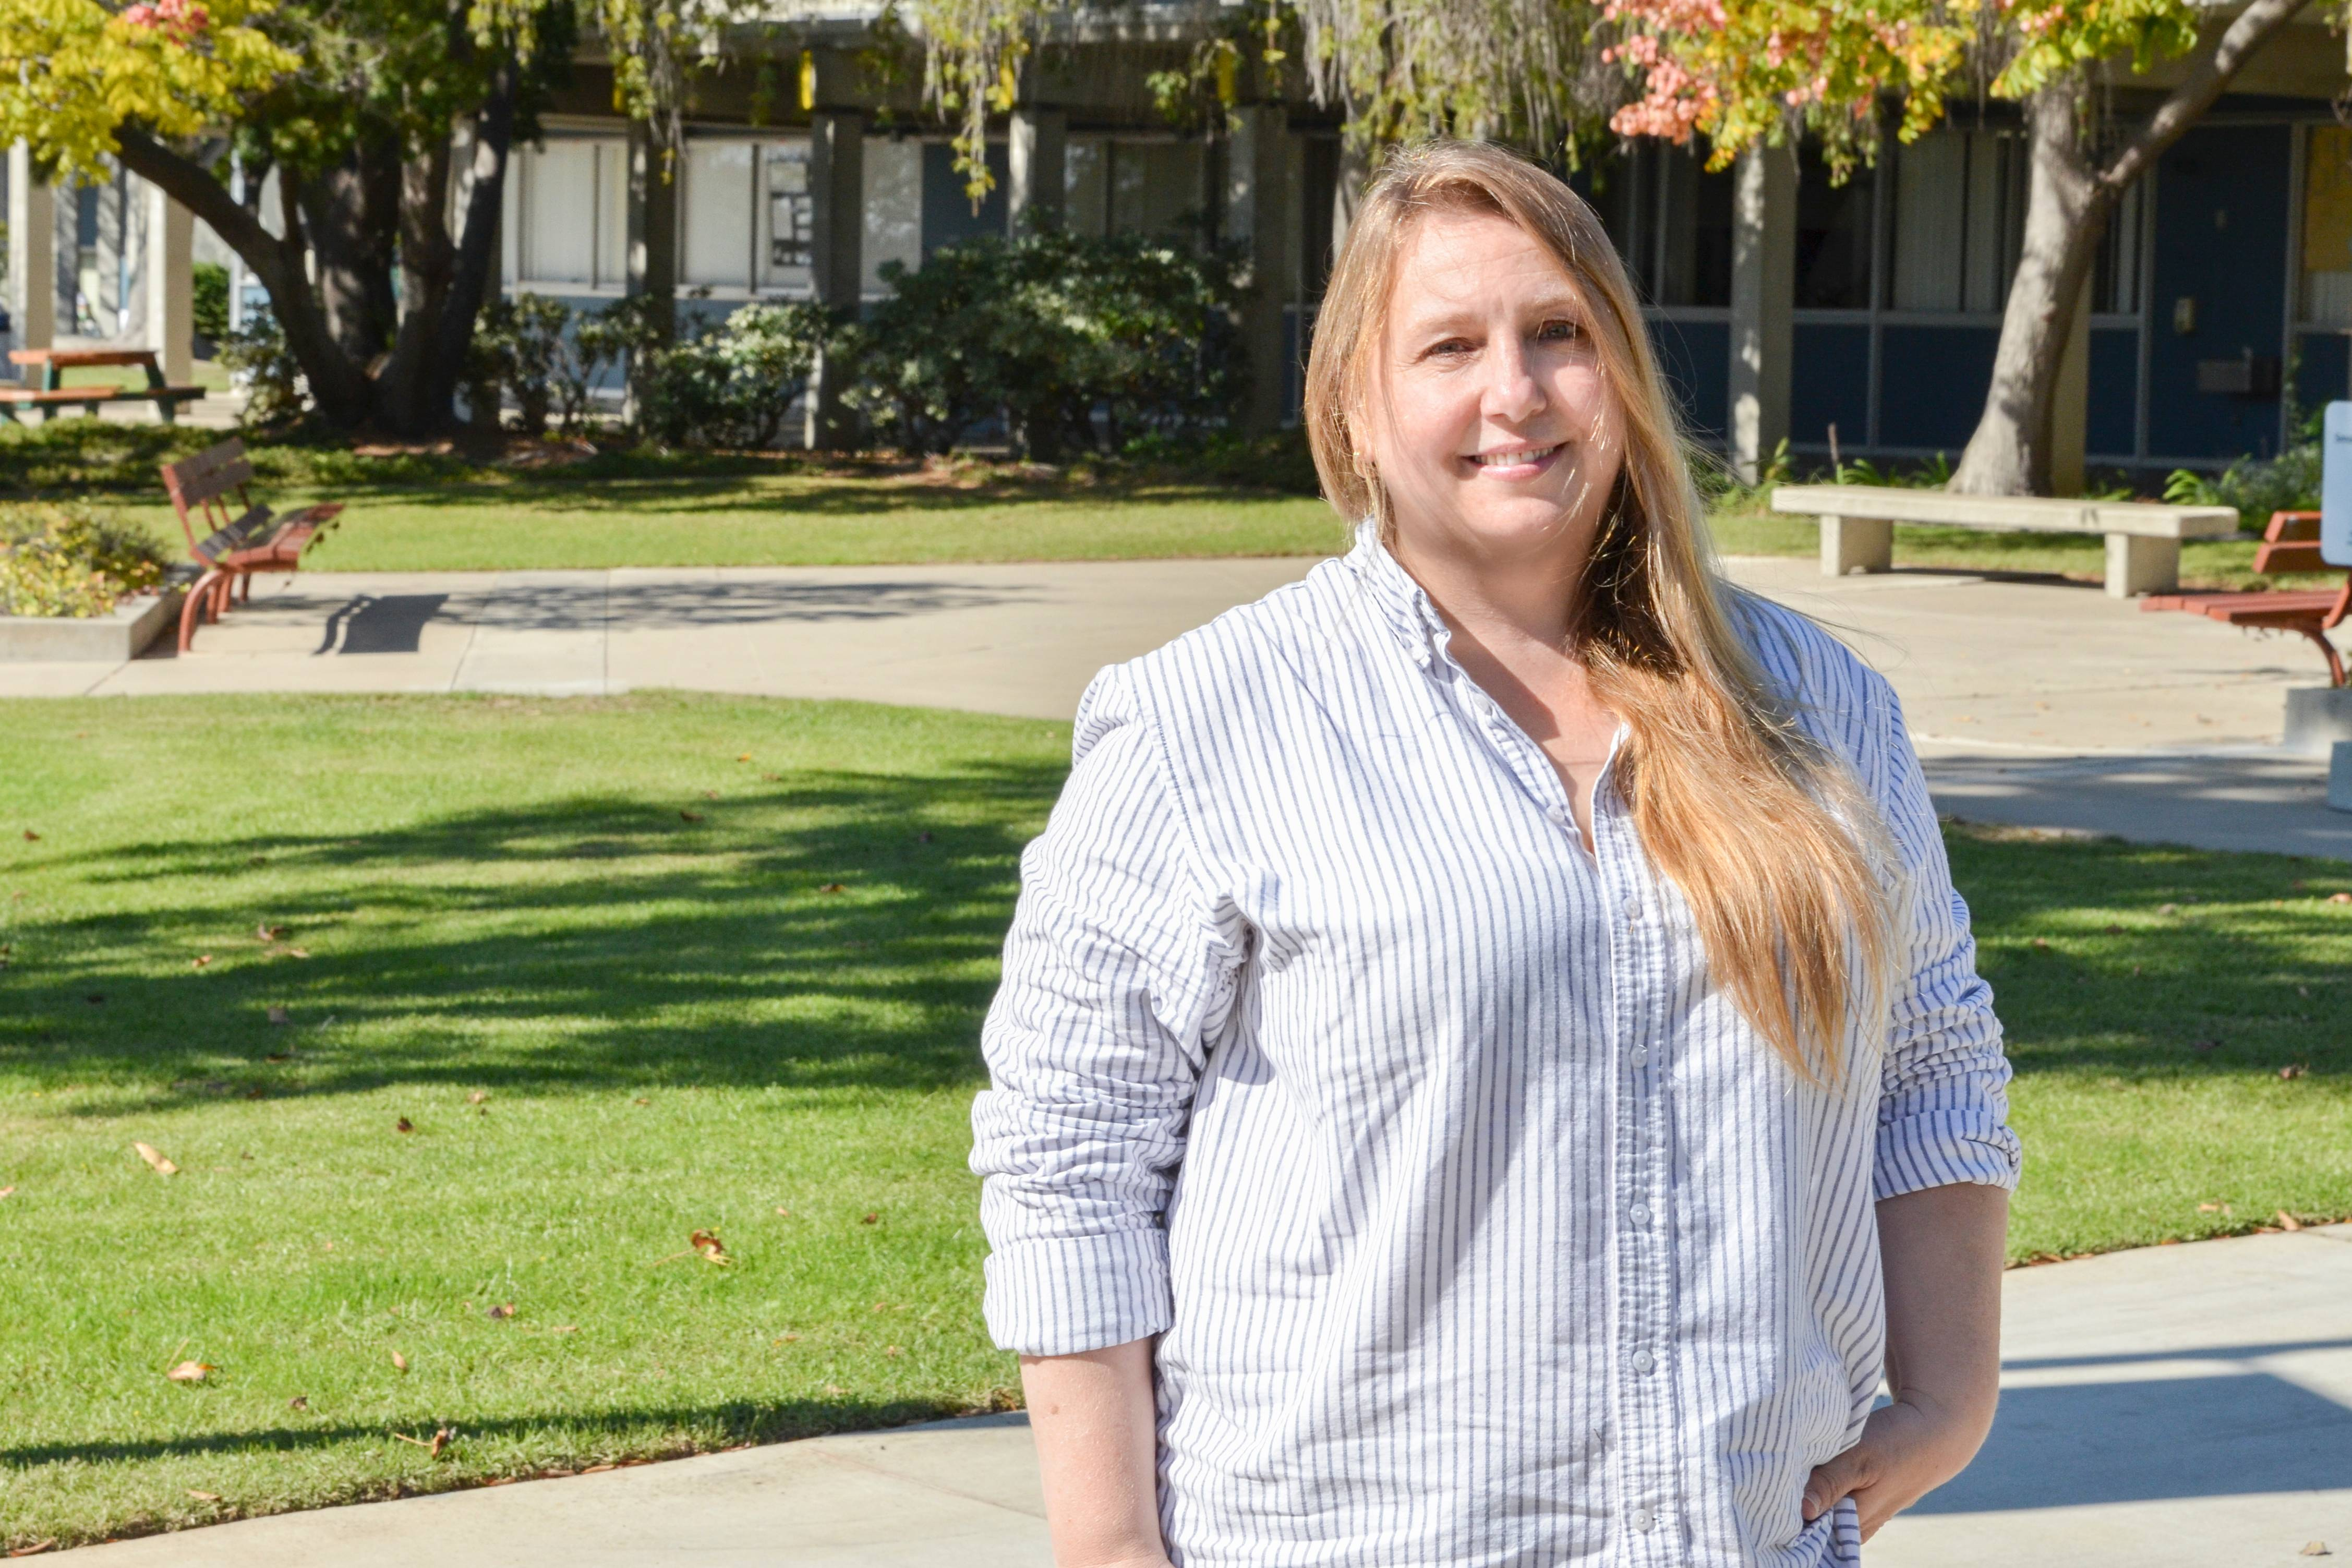 Following in the footsteps of her father and cousins, San Diego Mesa College student Janet Langrehr joined the U.S. Marine Corps in 1985, 29 years before stepping onto campus as a student.